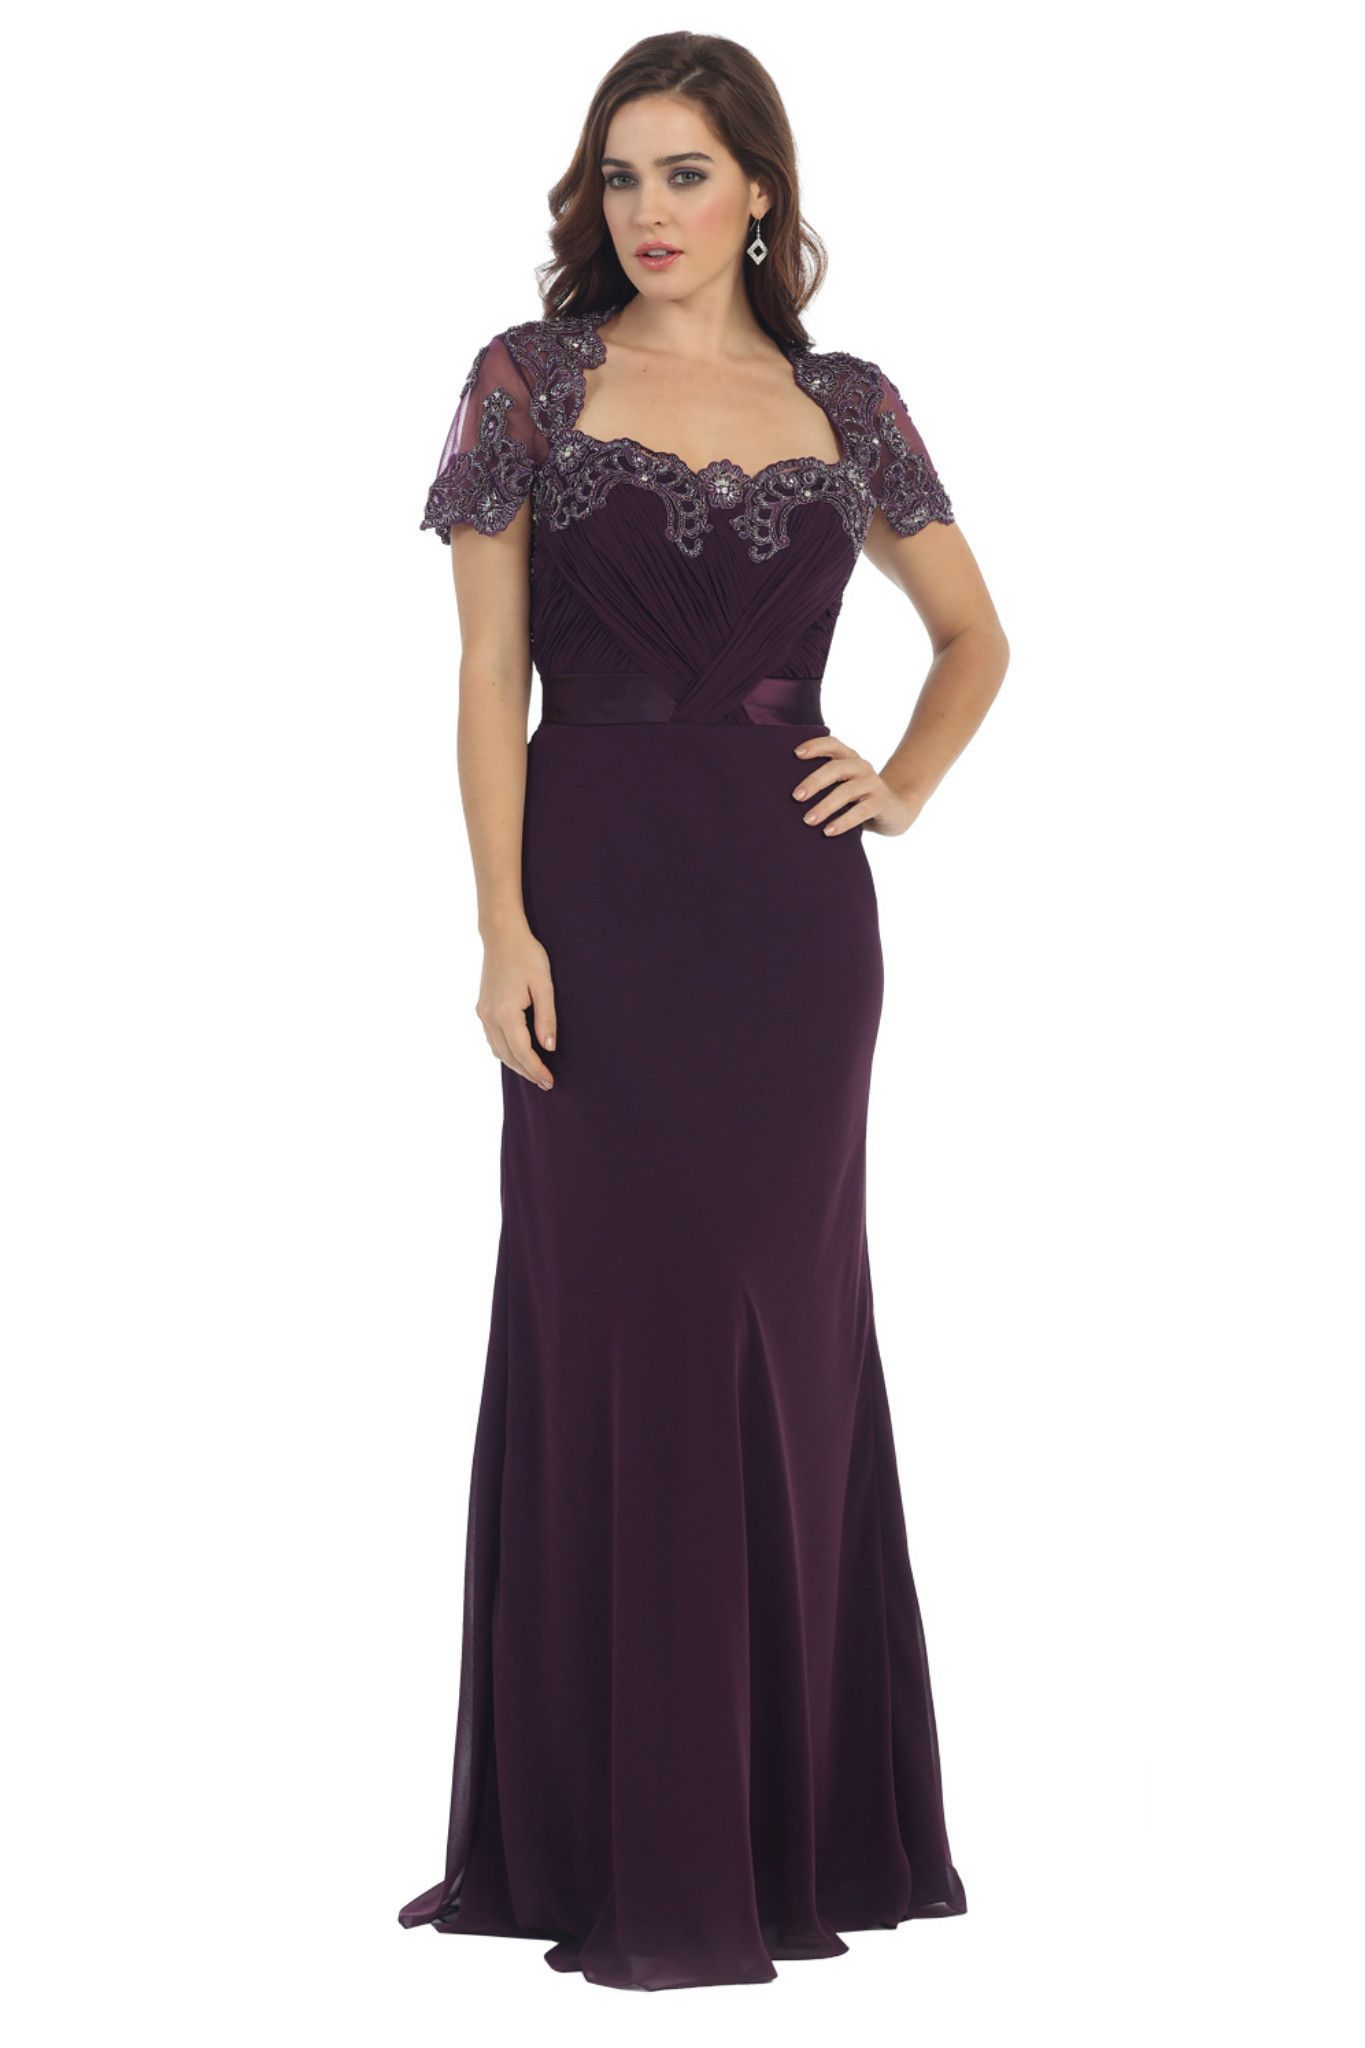 Mother dresses wedding plus size  Plus Size Short Sleeve Chiffon Mother of the Bride Formal Evening